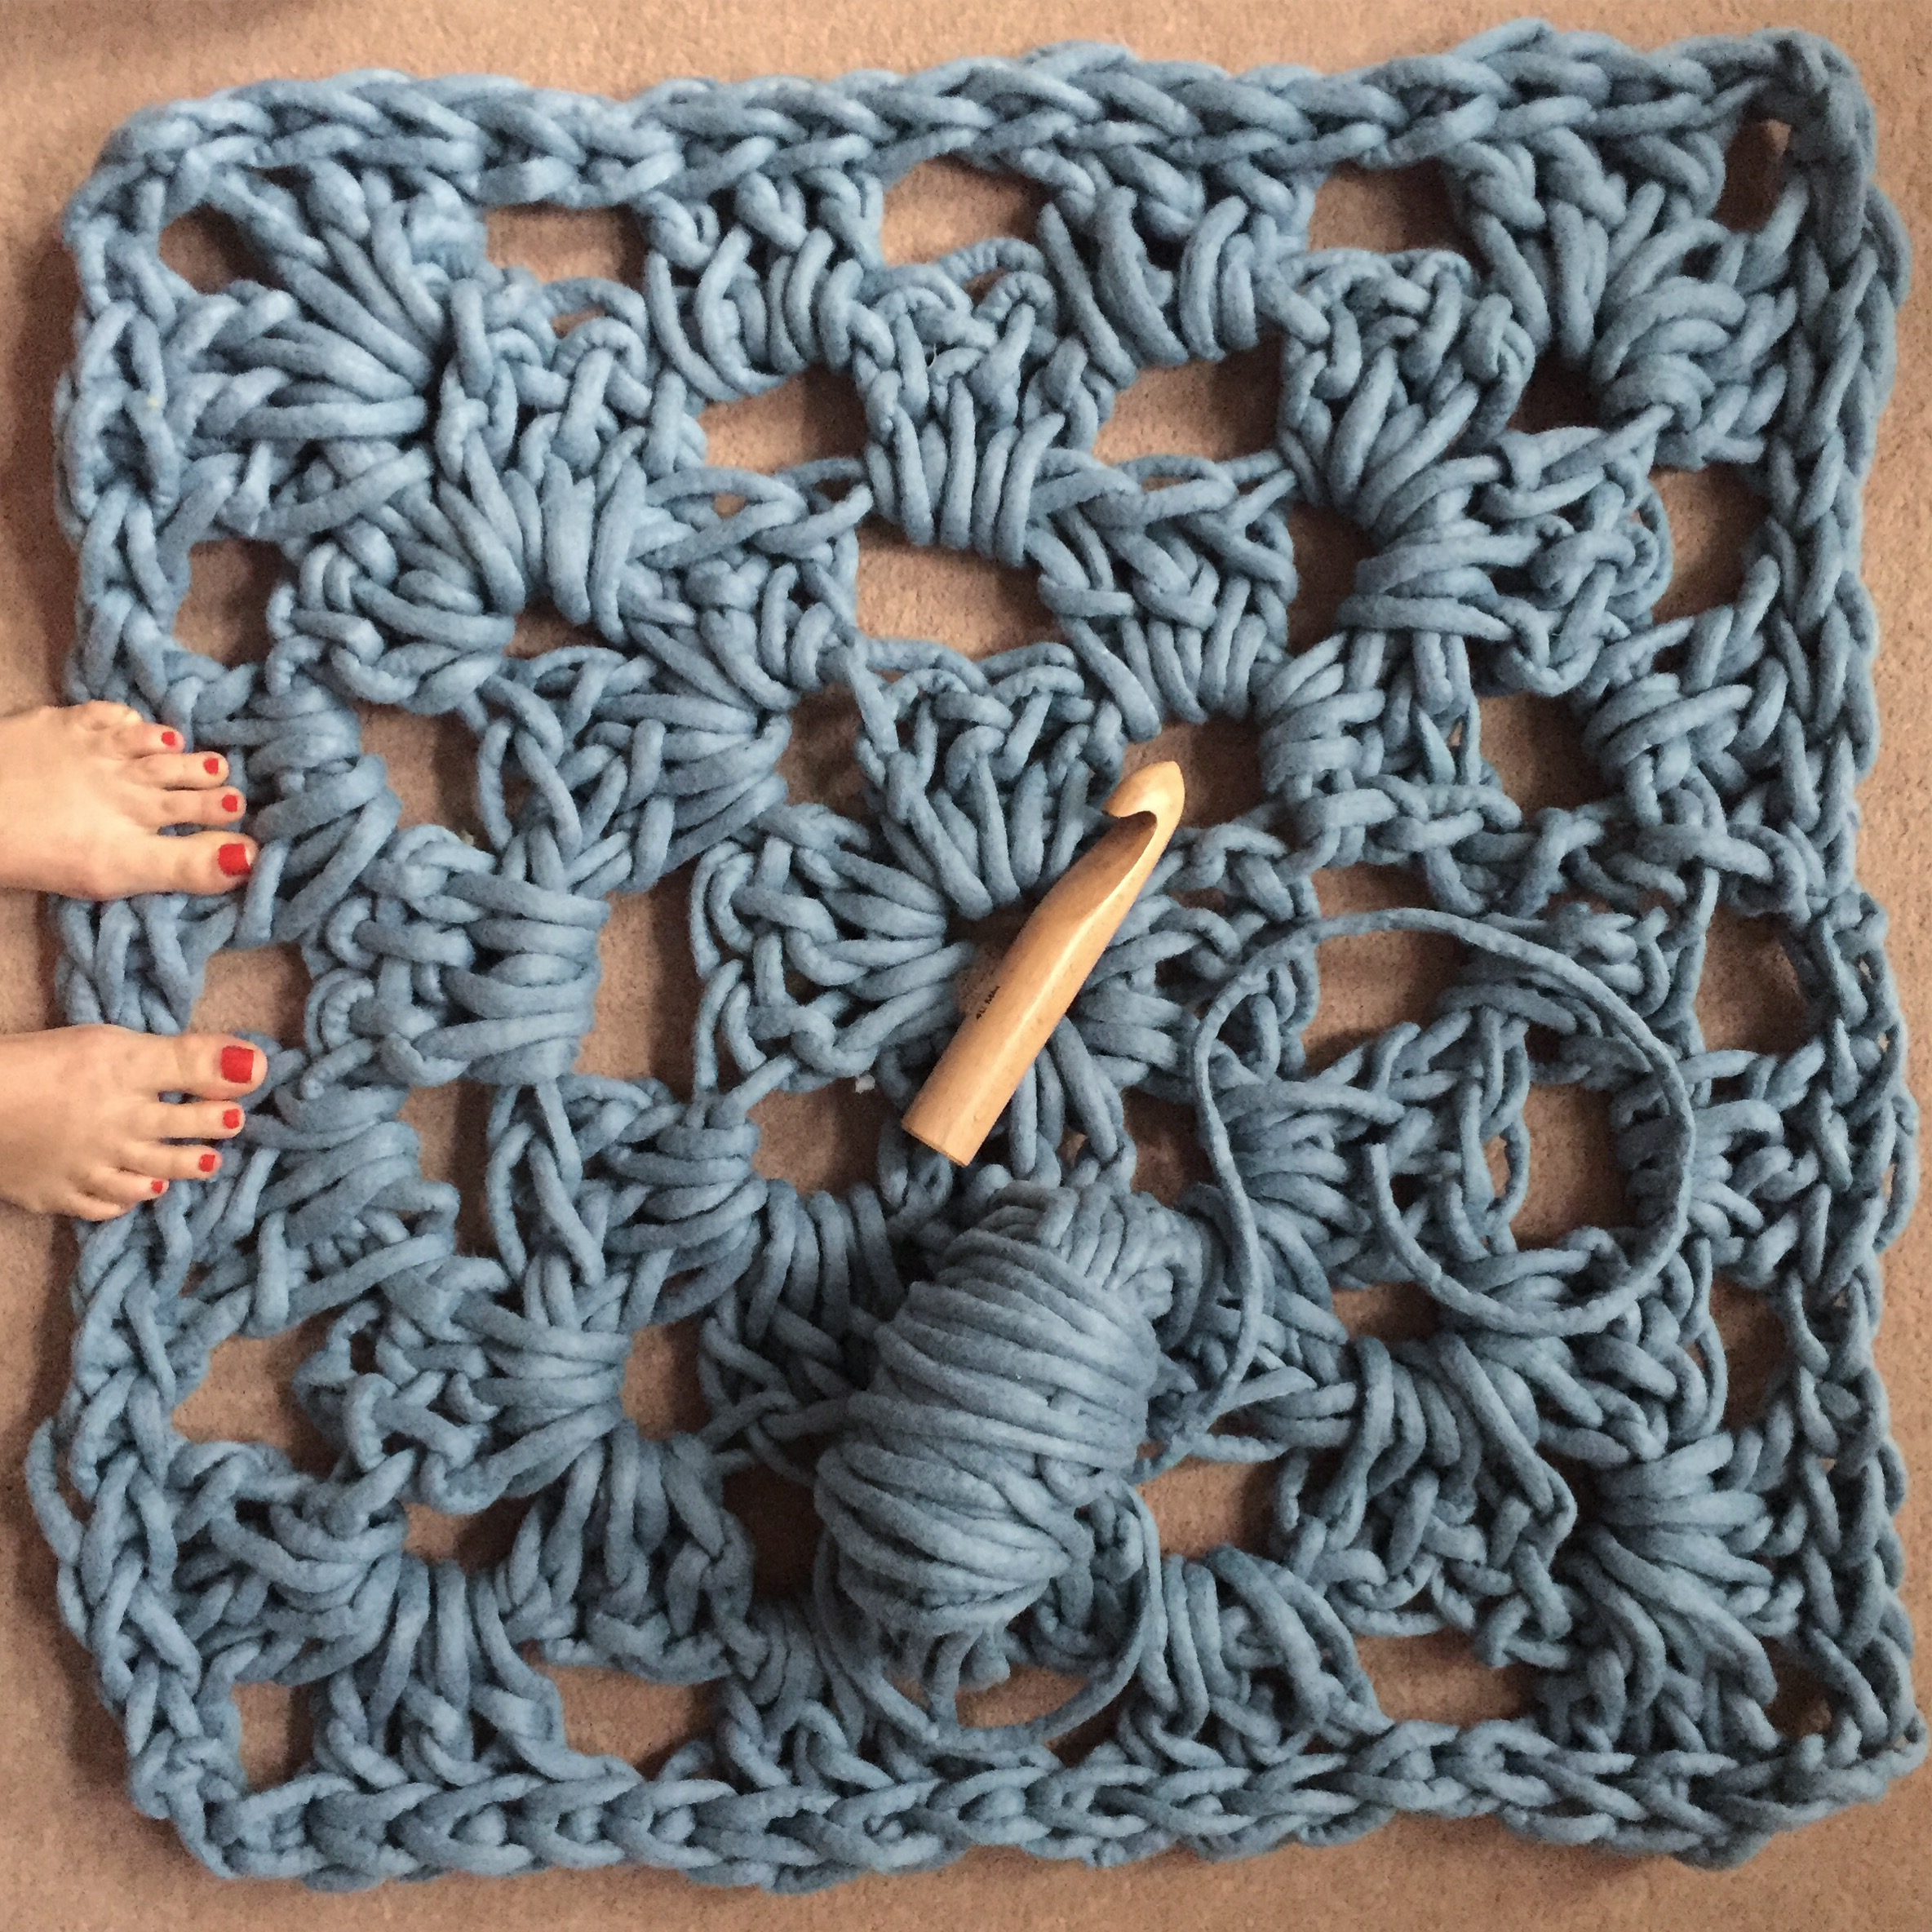 Giant Crocheted Granny Square Rug Workshop London Daytime Reviews